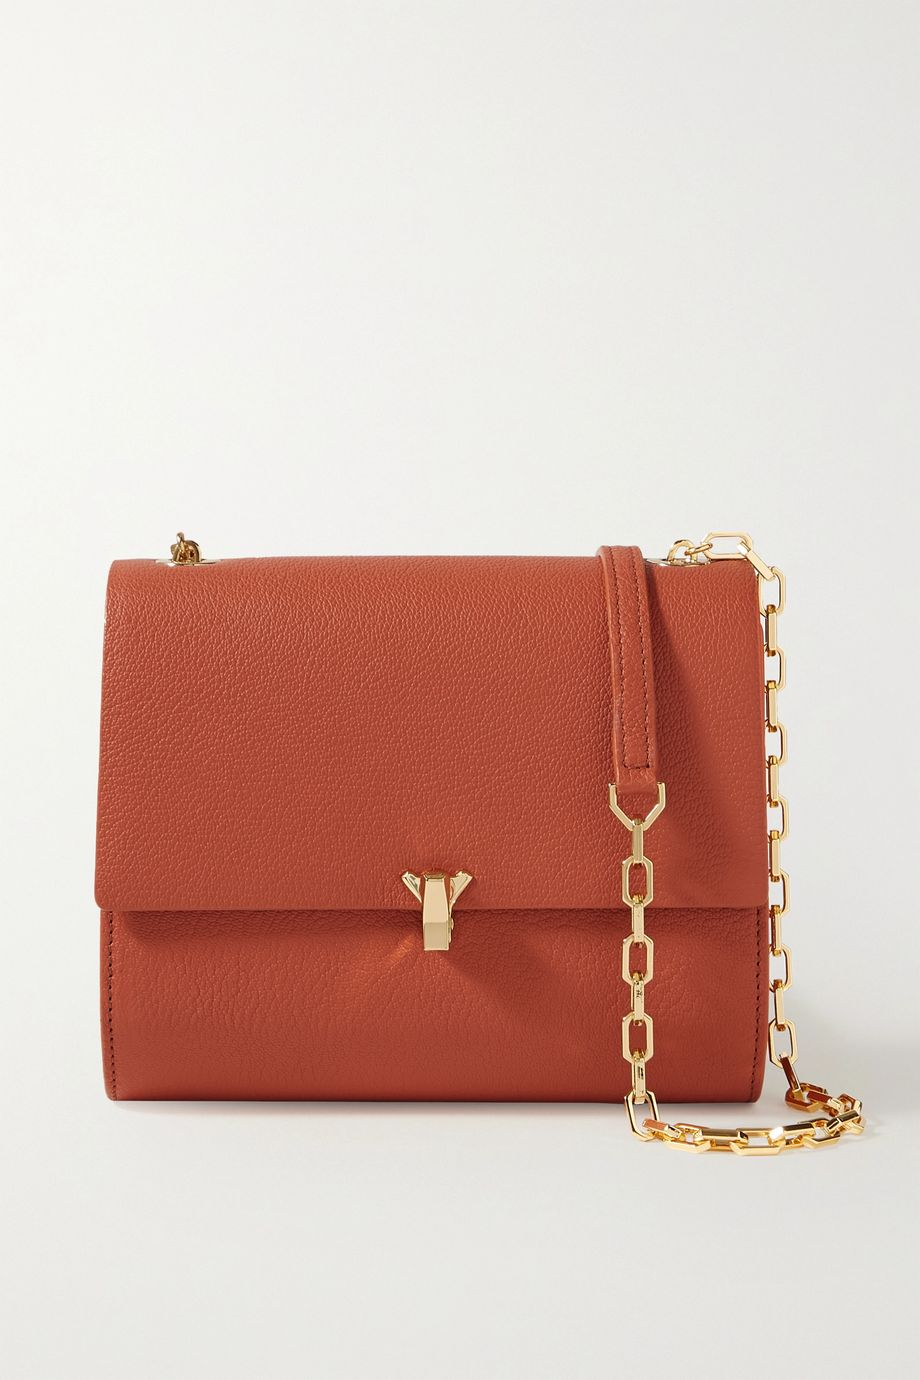 THE VOLON Po Moon textured-leather shoulder bag